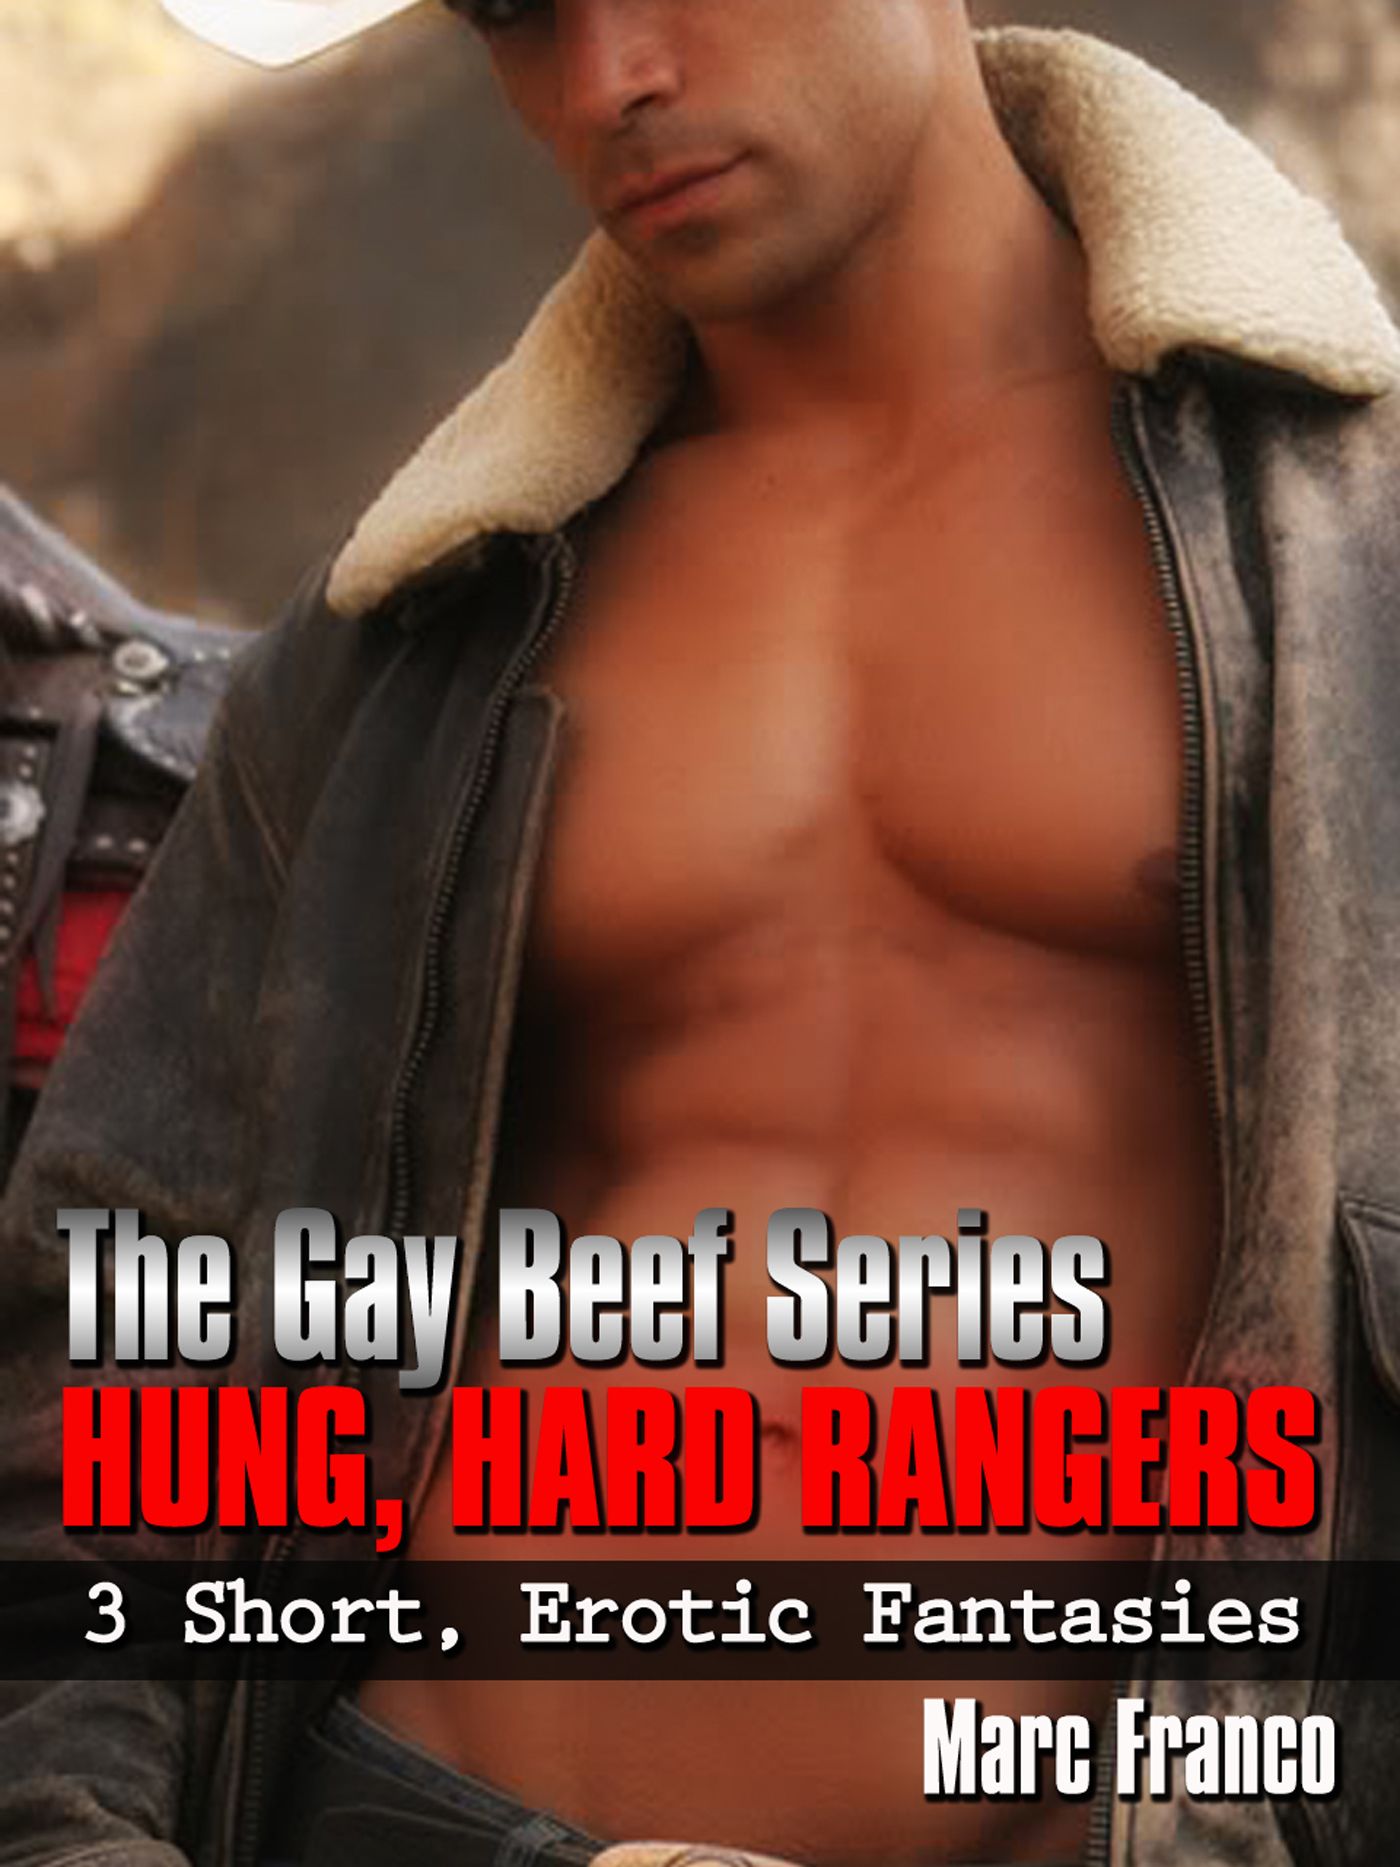 from Maximo hung gay stories